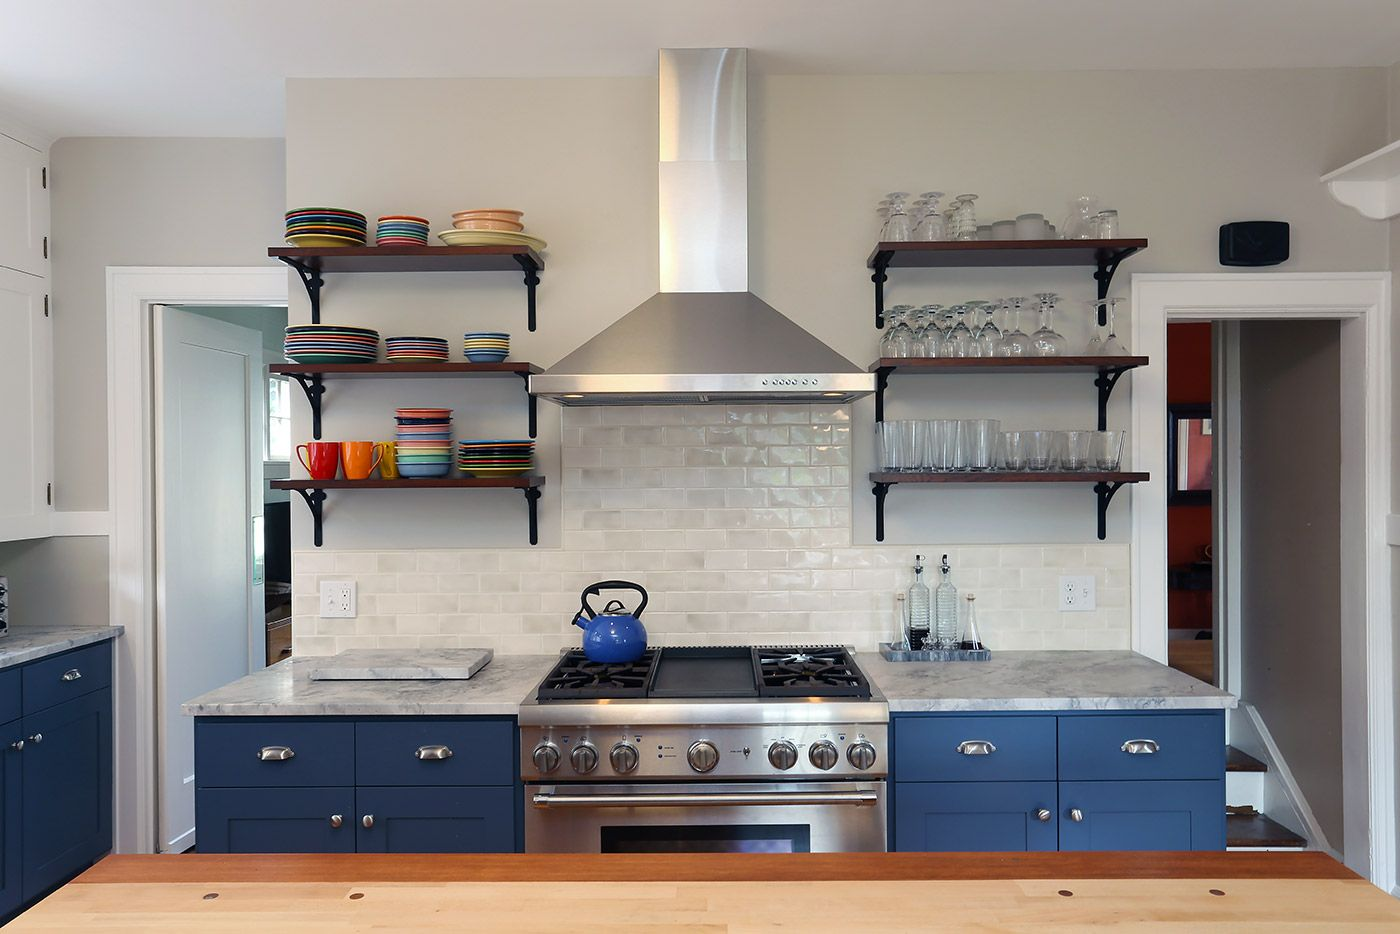 Kitchen Remodeling In Portland Oregon Upper Kitchen Cabinets Open Kitchen Shelves Kitchen Decor Themes